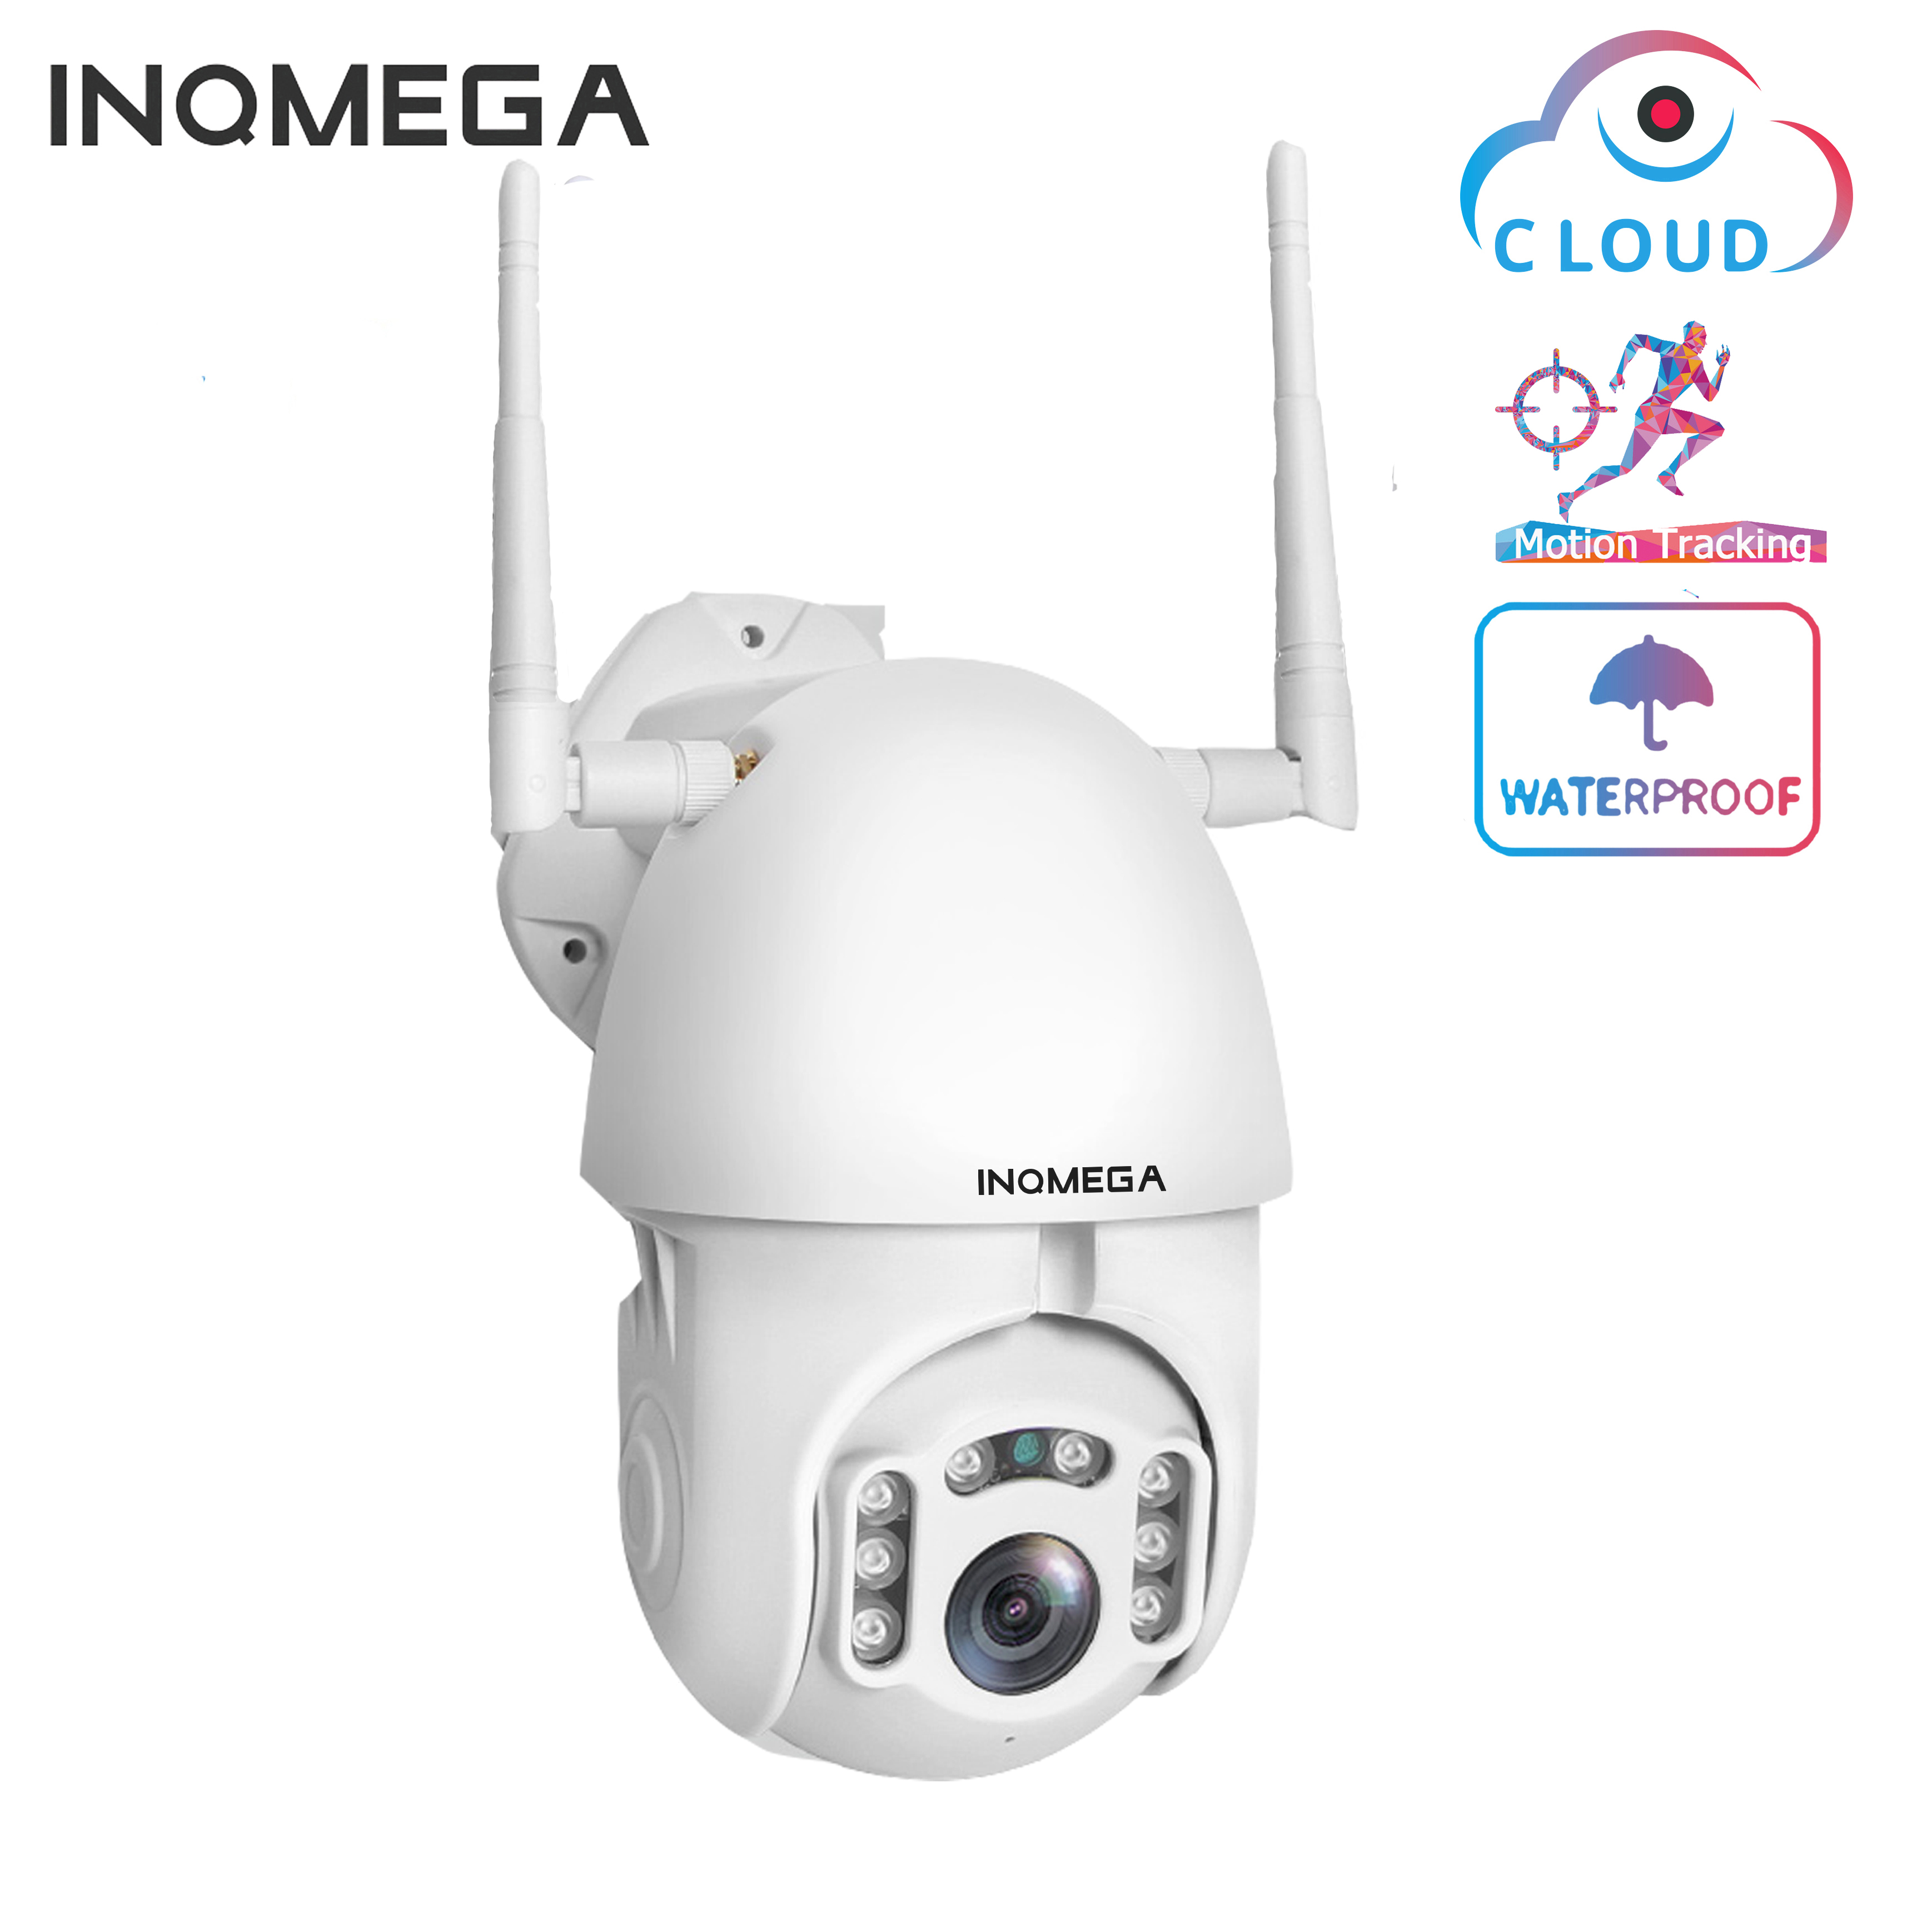 INQMEGA 1080P IP Camera WiFi Wireless Auto tracking PTZ Speed Dome Camera Outdoor CCTV Security Surveillance